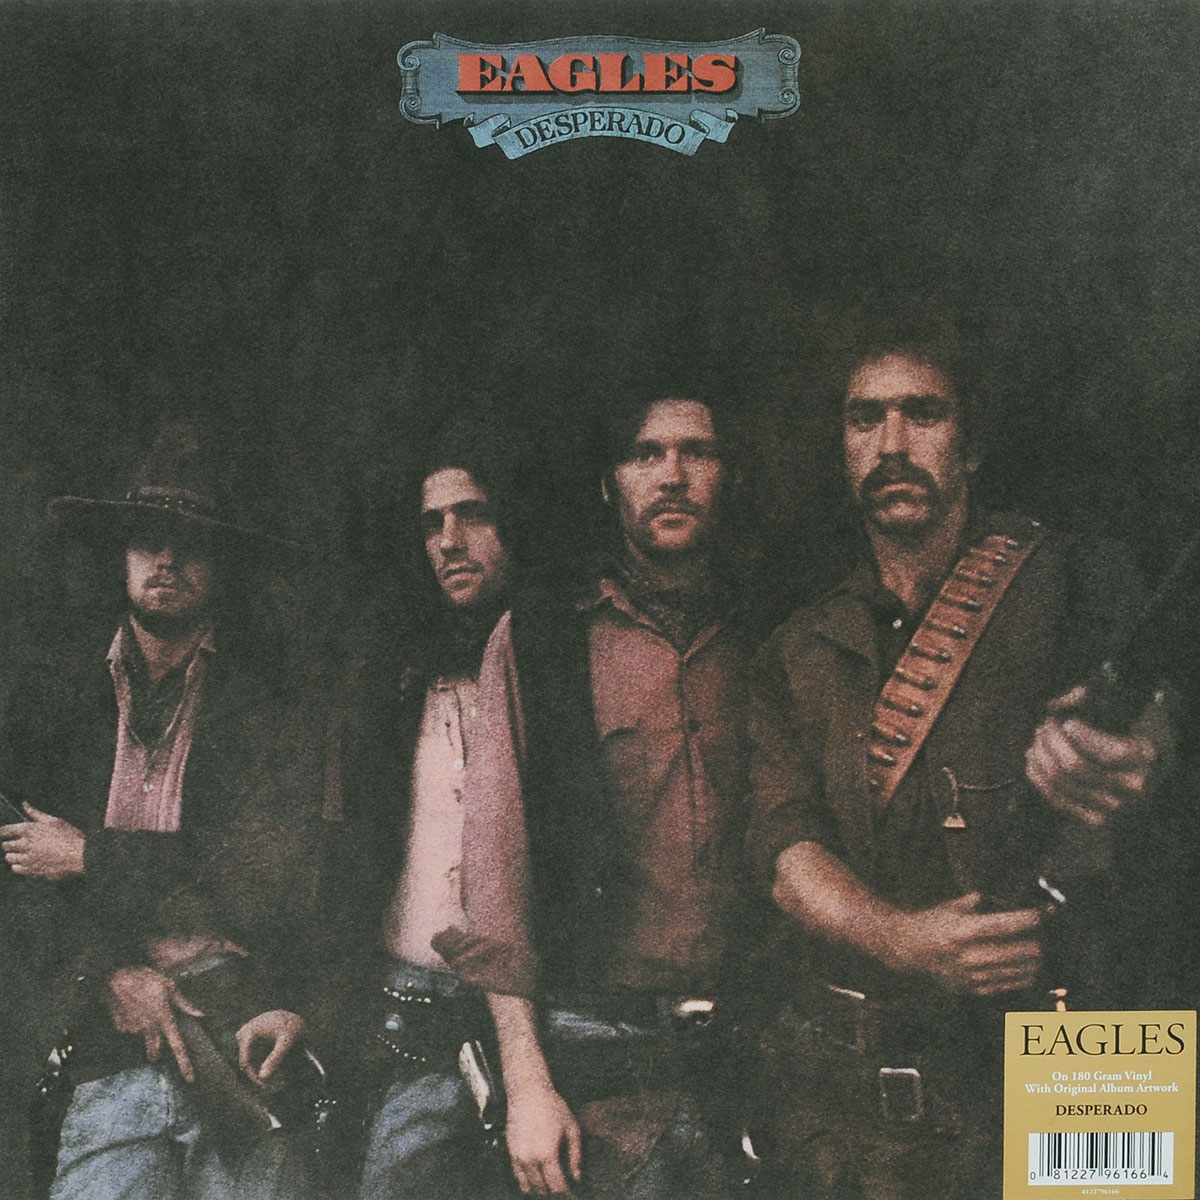 цена на The Eagles Eagles. Desperado (LP)